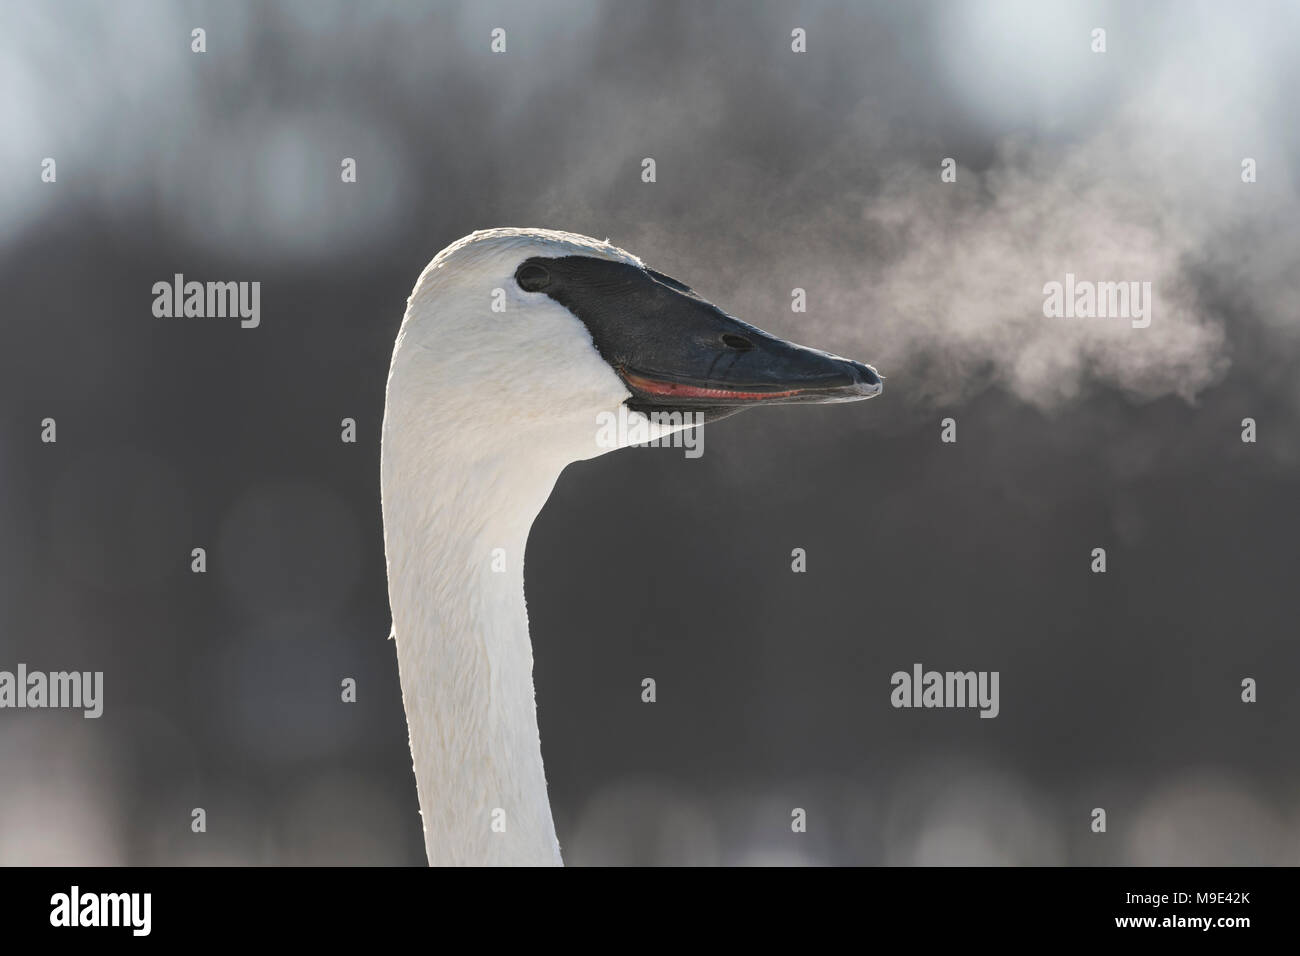 Trumpeter swan (Cygnus buccinator) exhaling, visible breath, WI, USA, early January, by Dominique Braud/Dembinsky Photo Assoc - Stock Image